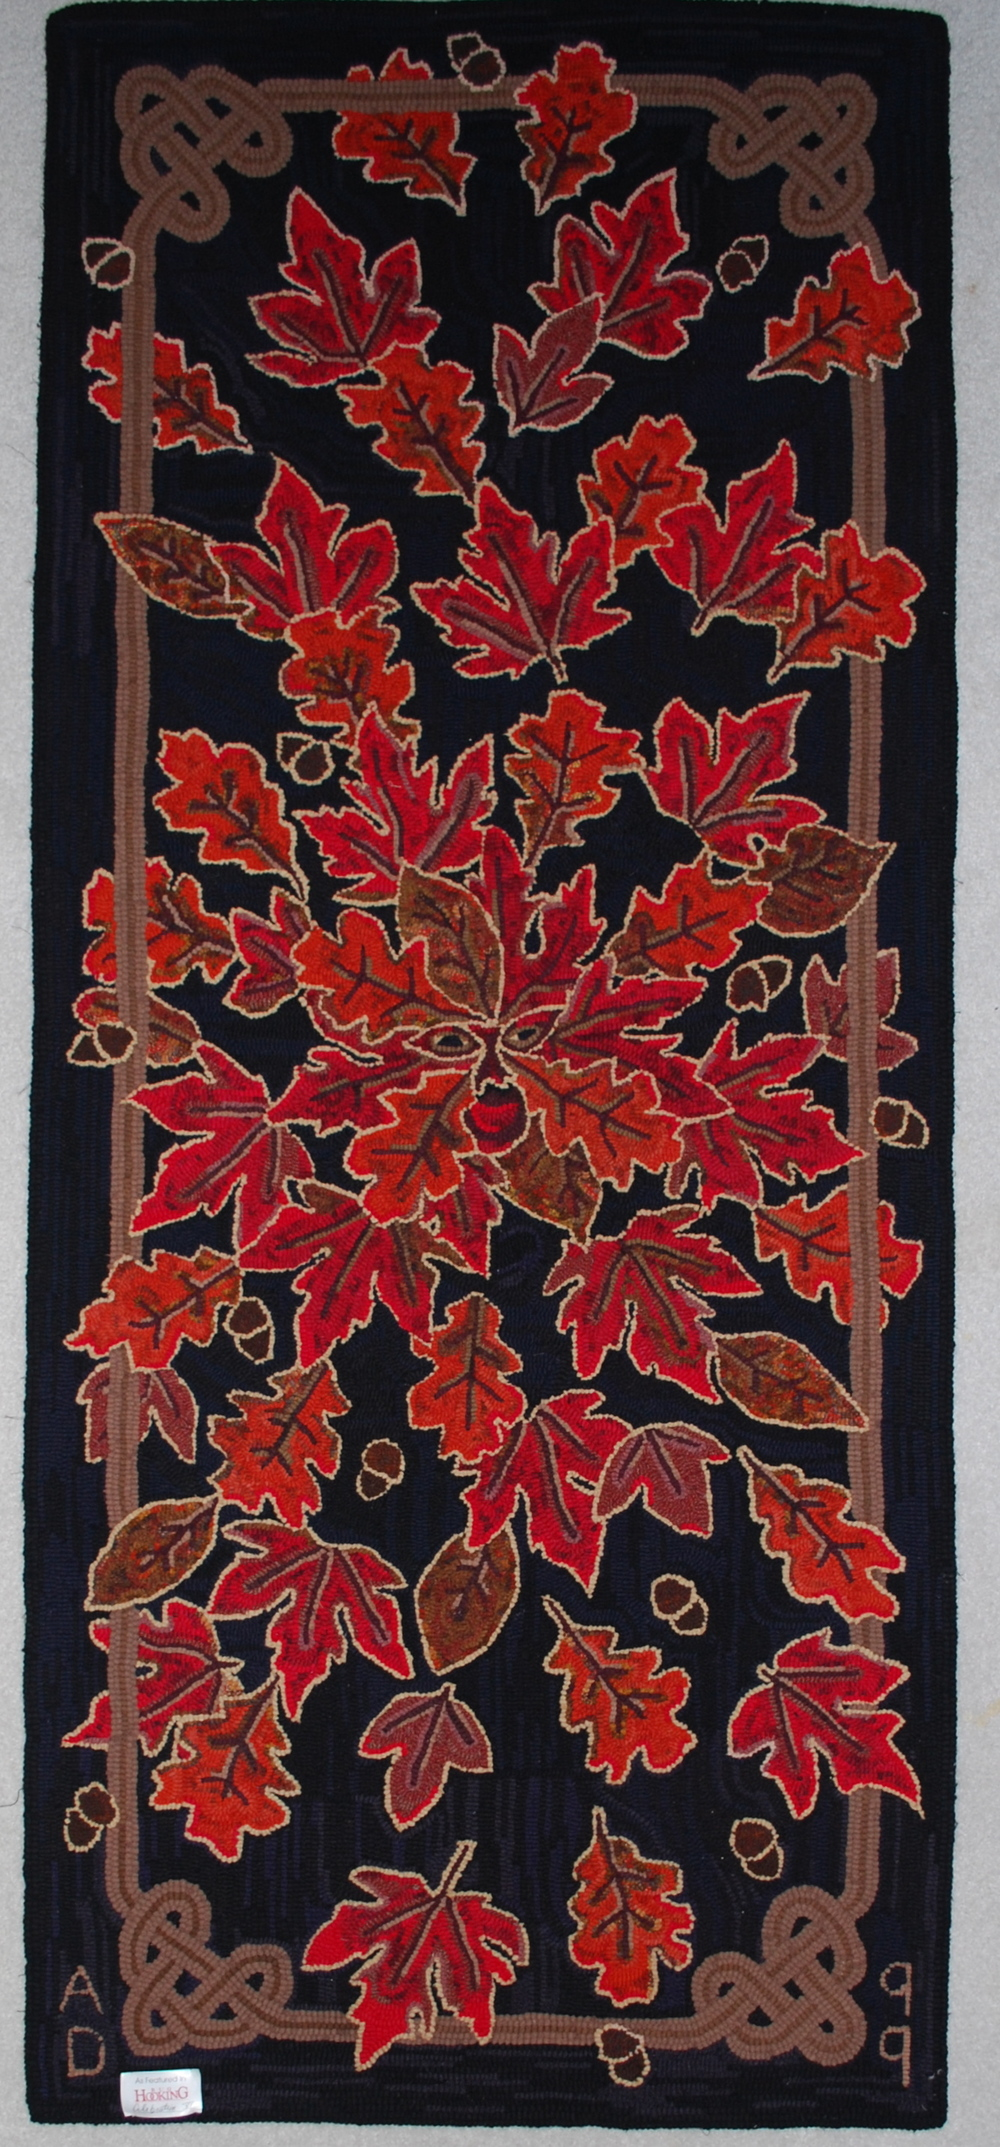 Jack in the Red 199 Featured in Celebration of Hooked Rug XI (1999)